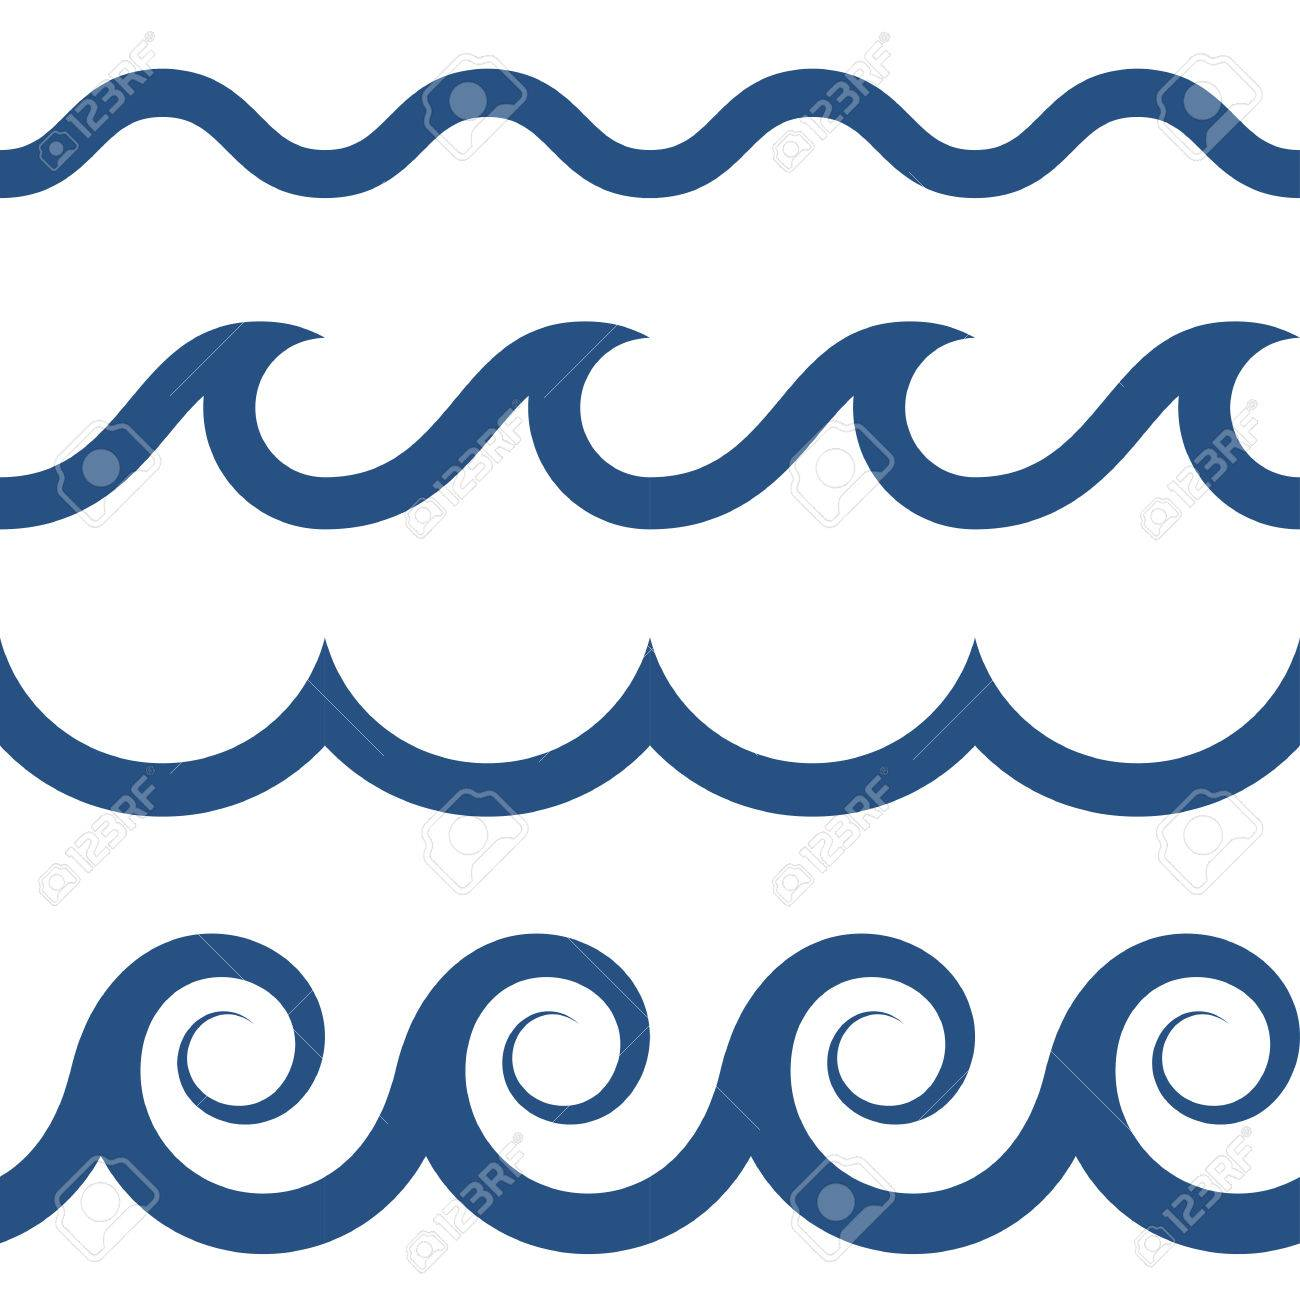 blue and white colored seamless Waves pattern - 65186962